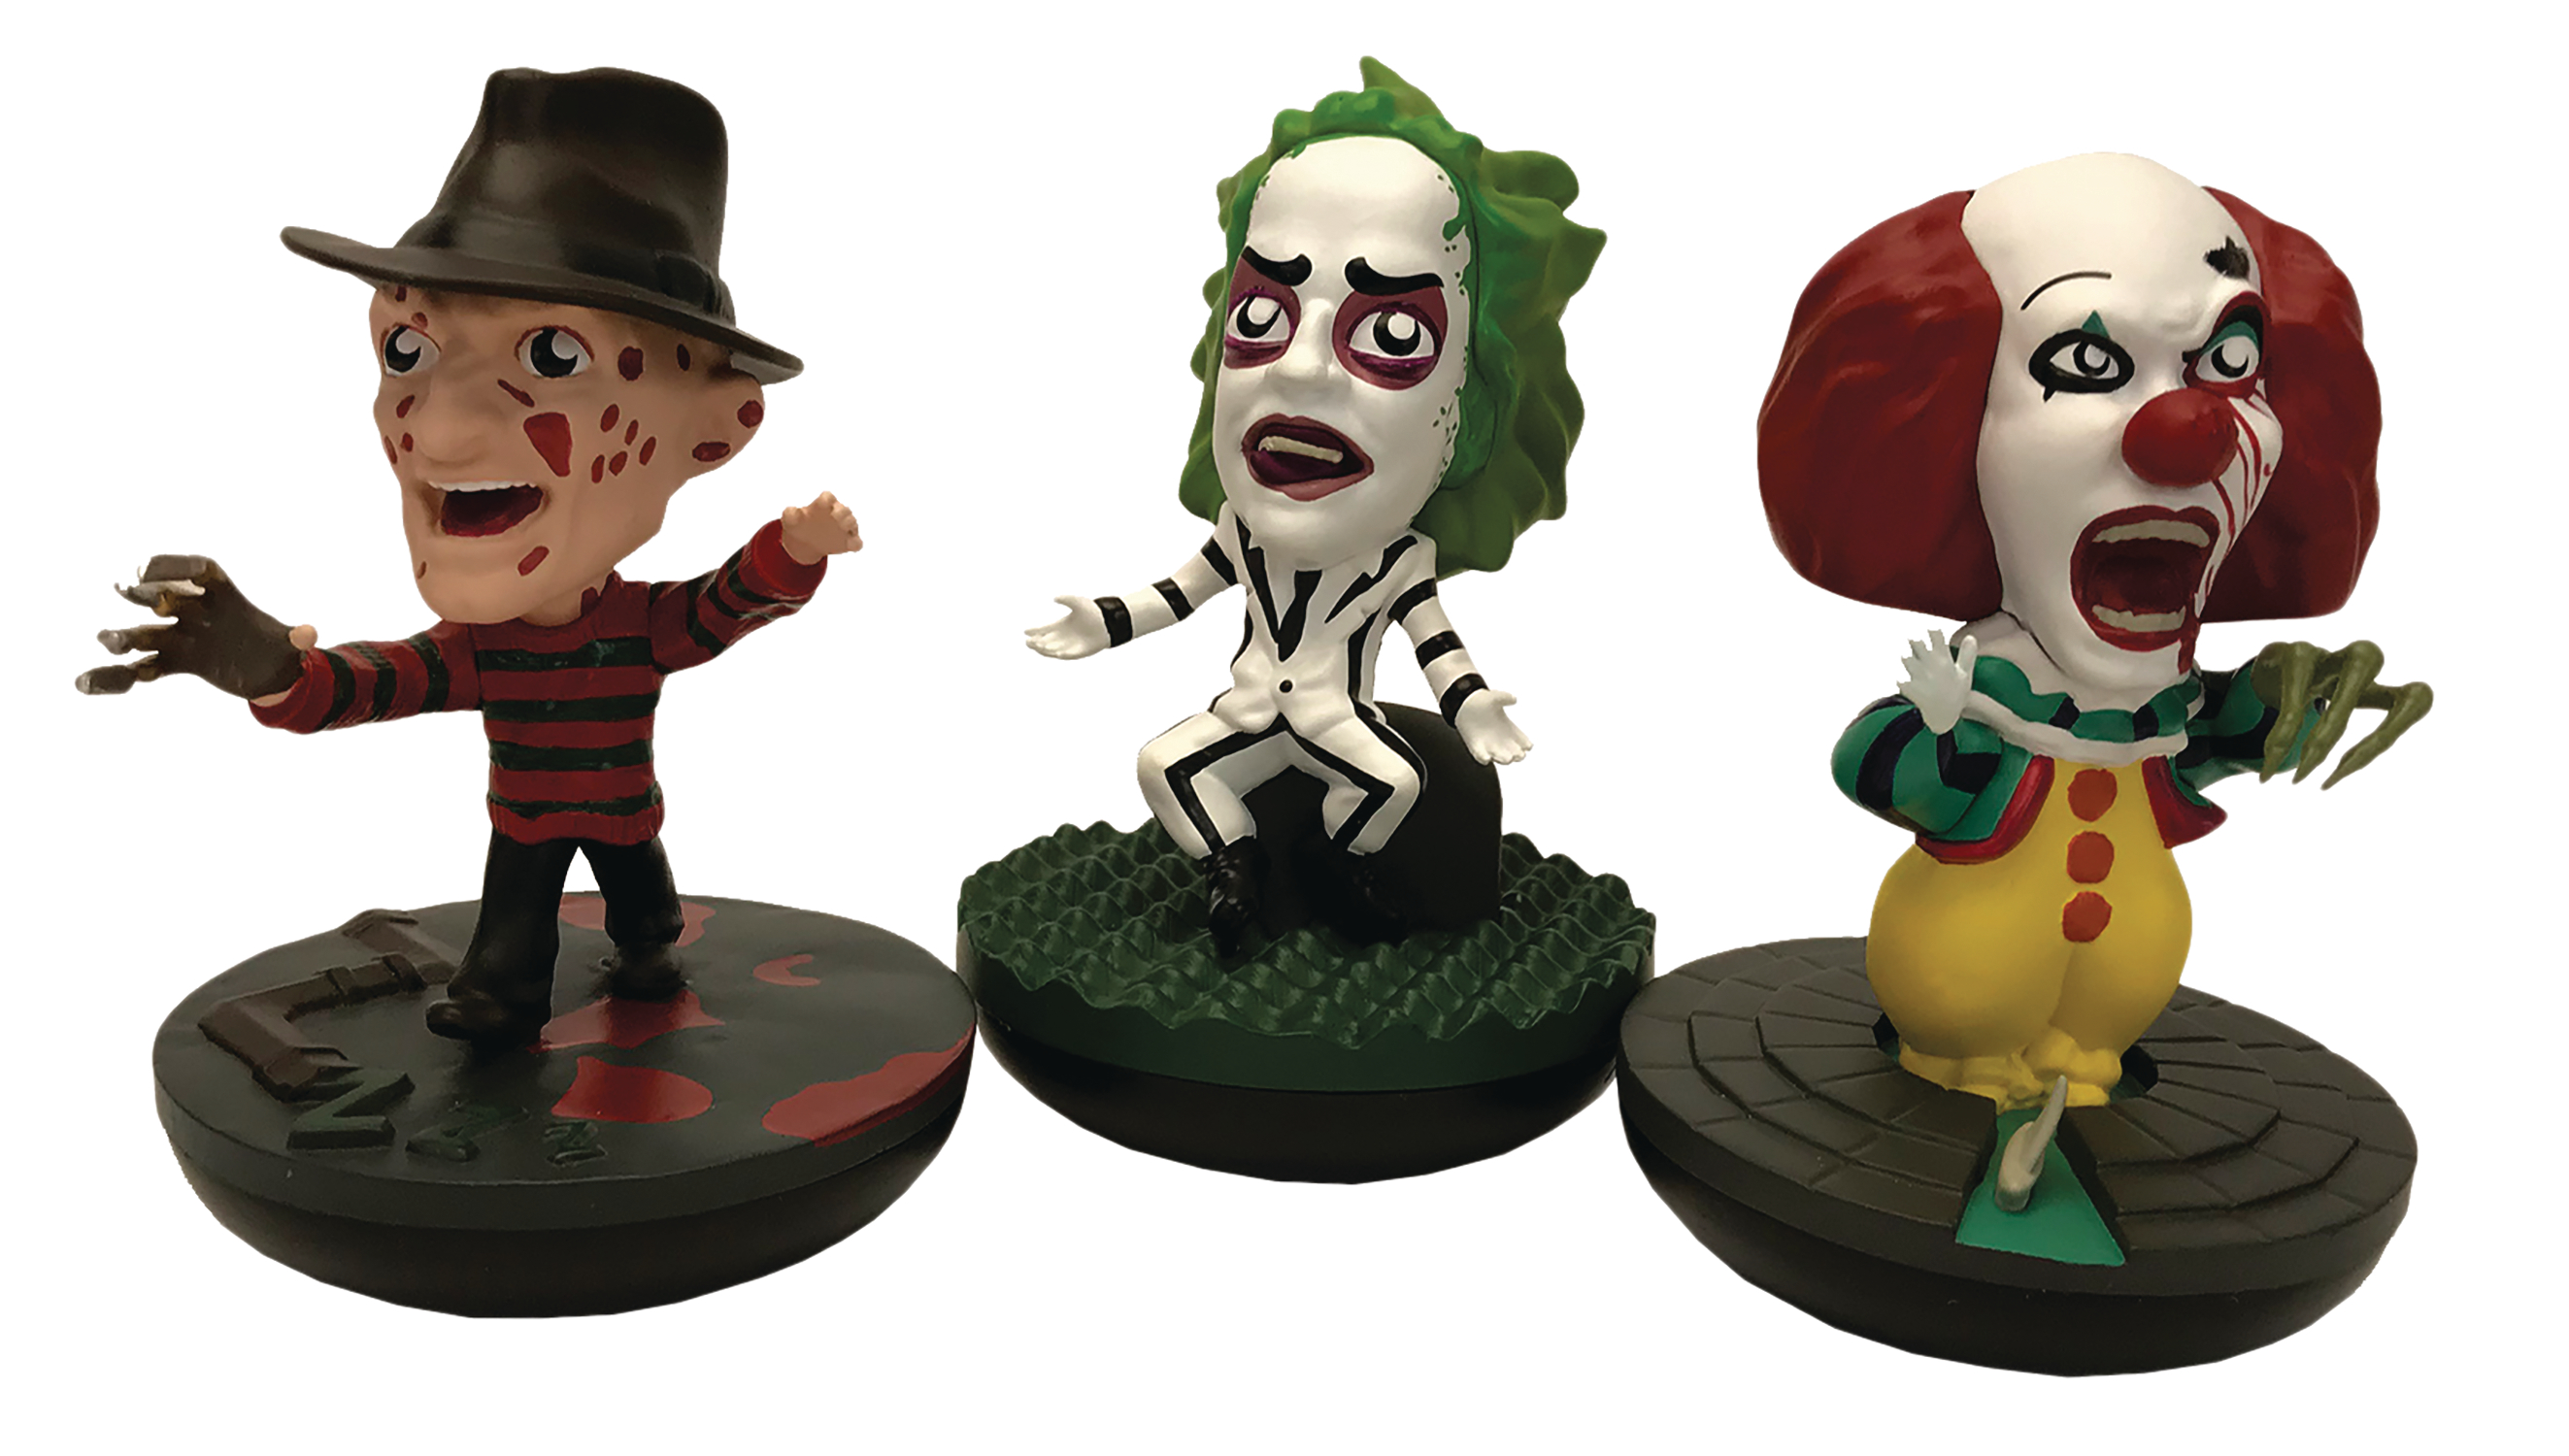 WARNER BROS. REVOS ASSORTMENT 1